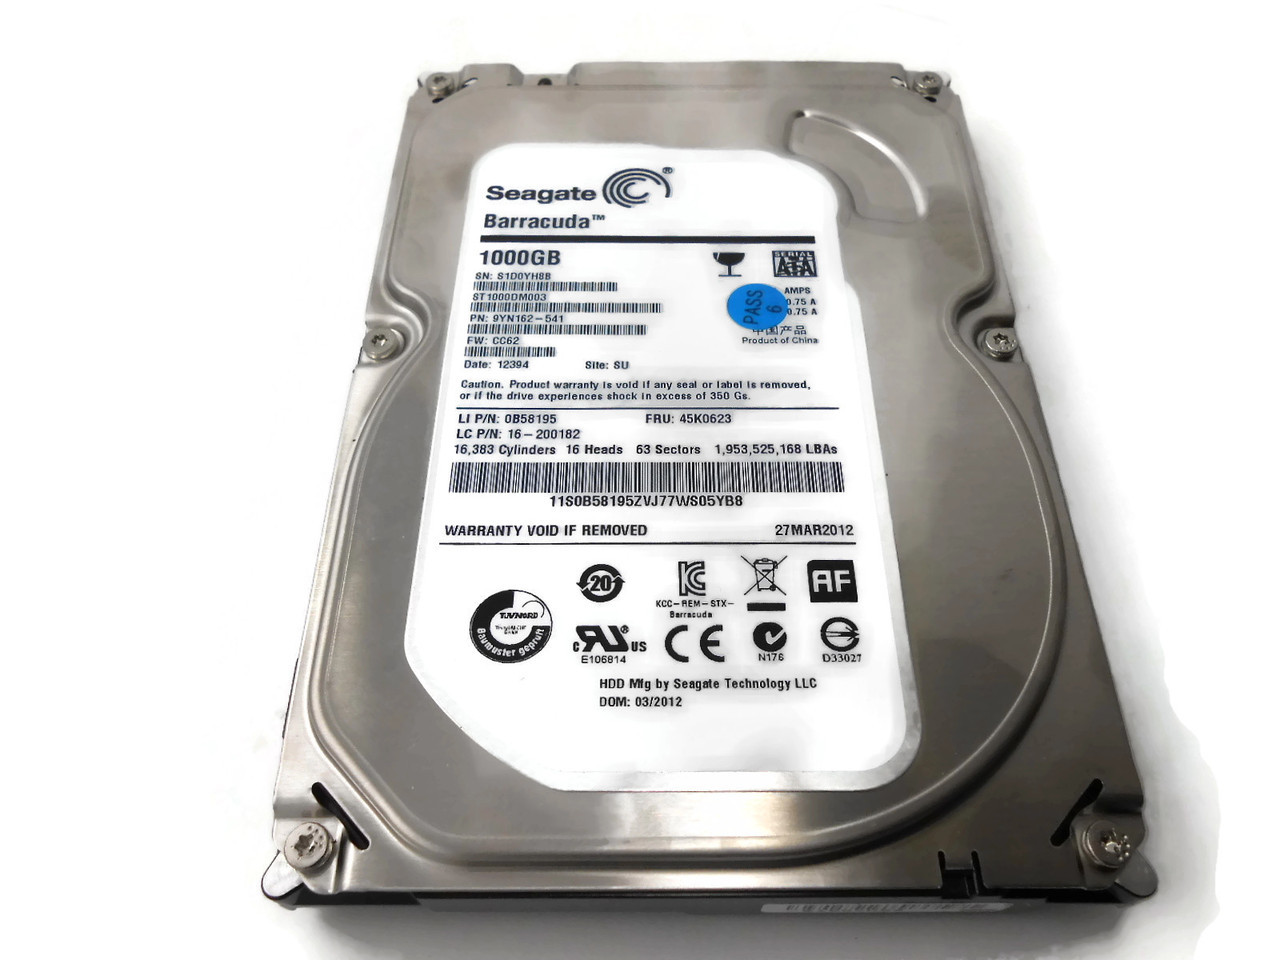 Lenovo ThinkCentre A30 Seagate Barracuda HDD Drivers for Windows XP